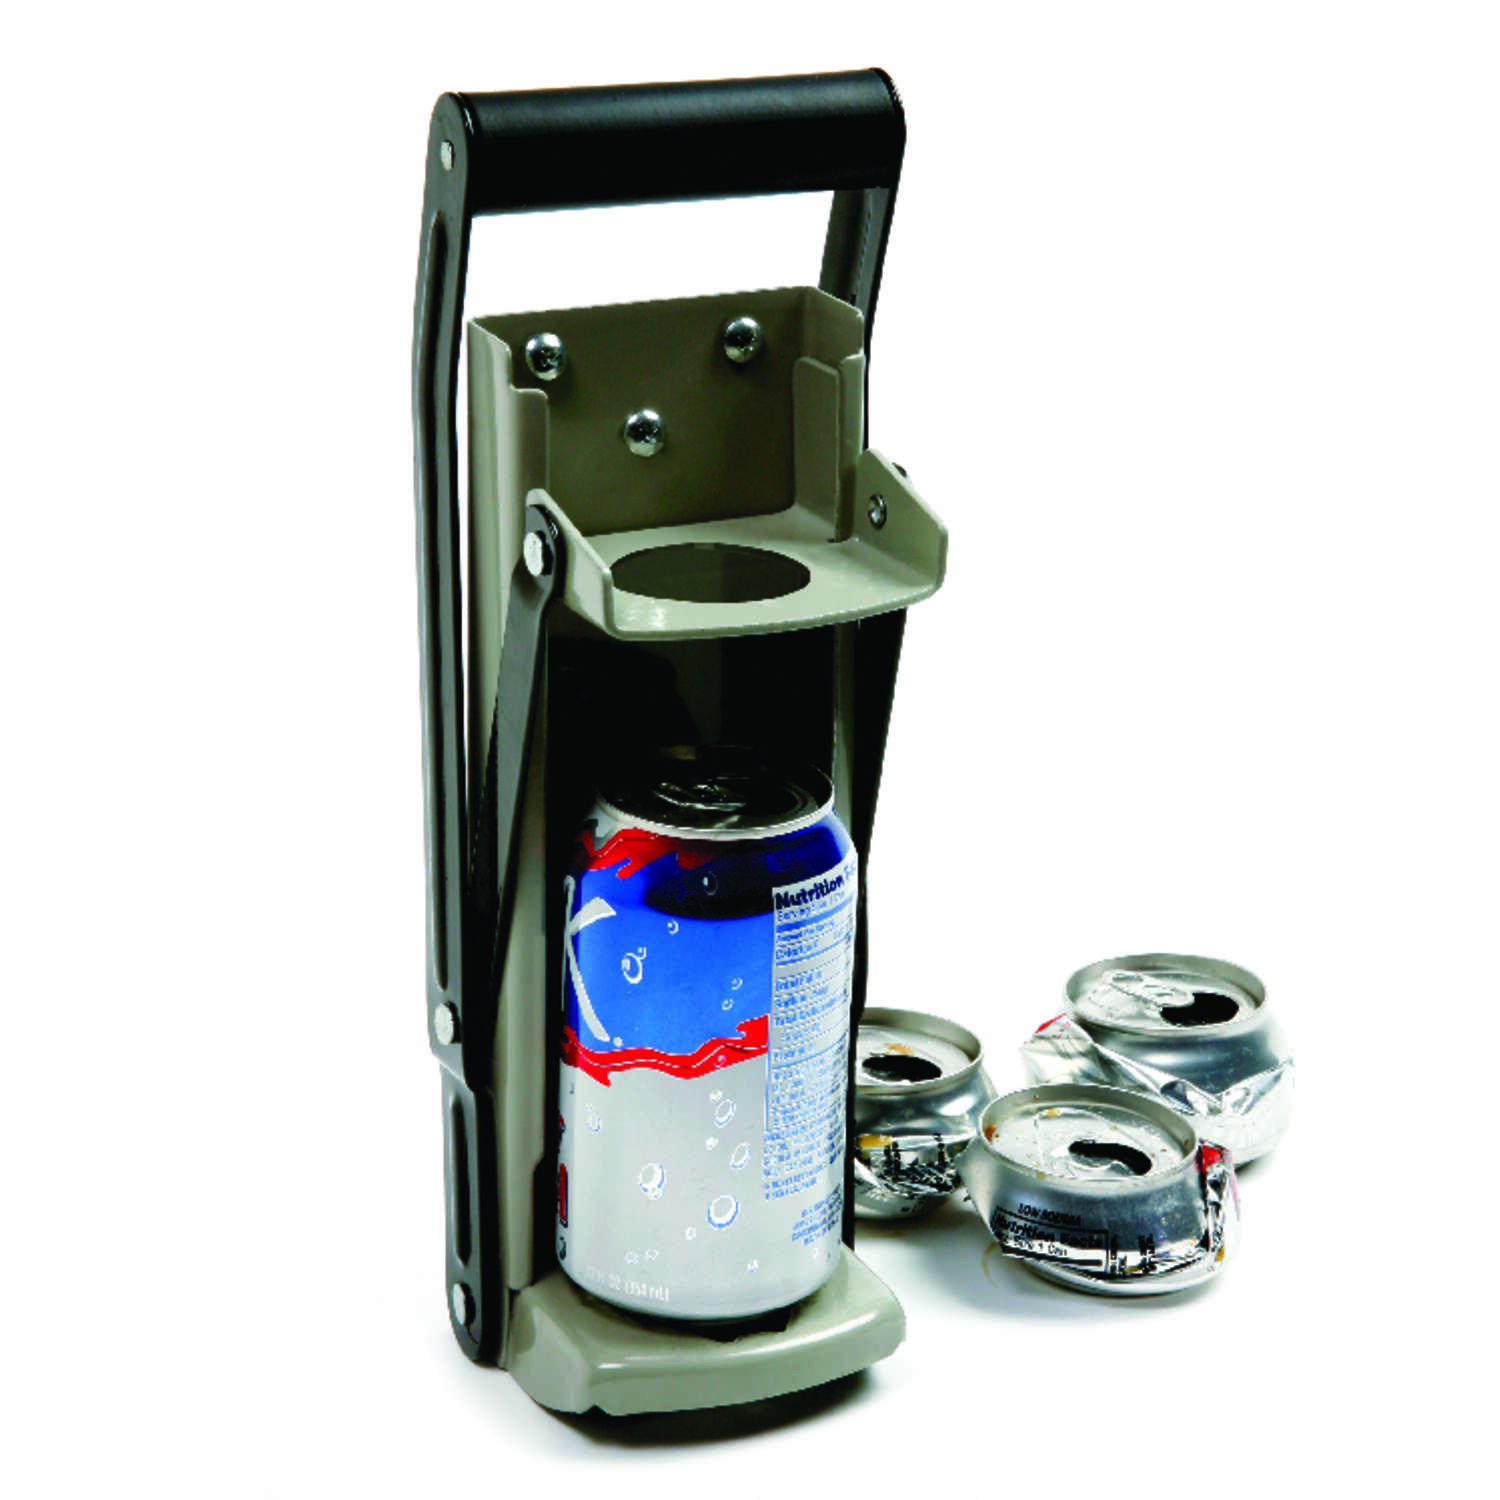 Norpro  13 in. H x 13 in. L x 4.5 in. W Can Crusher